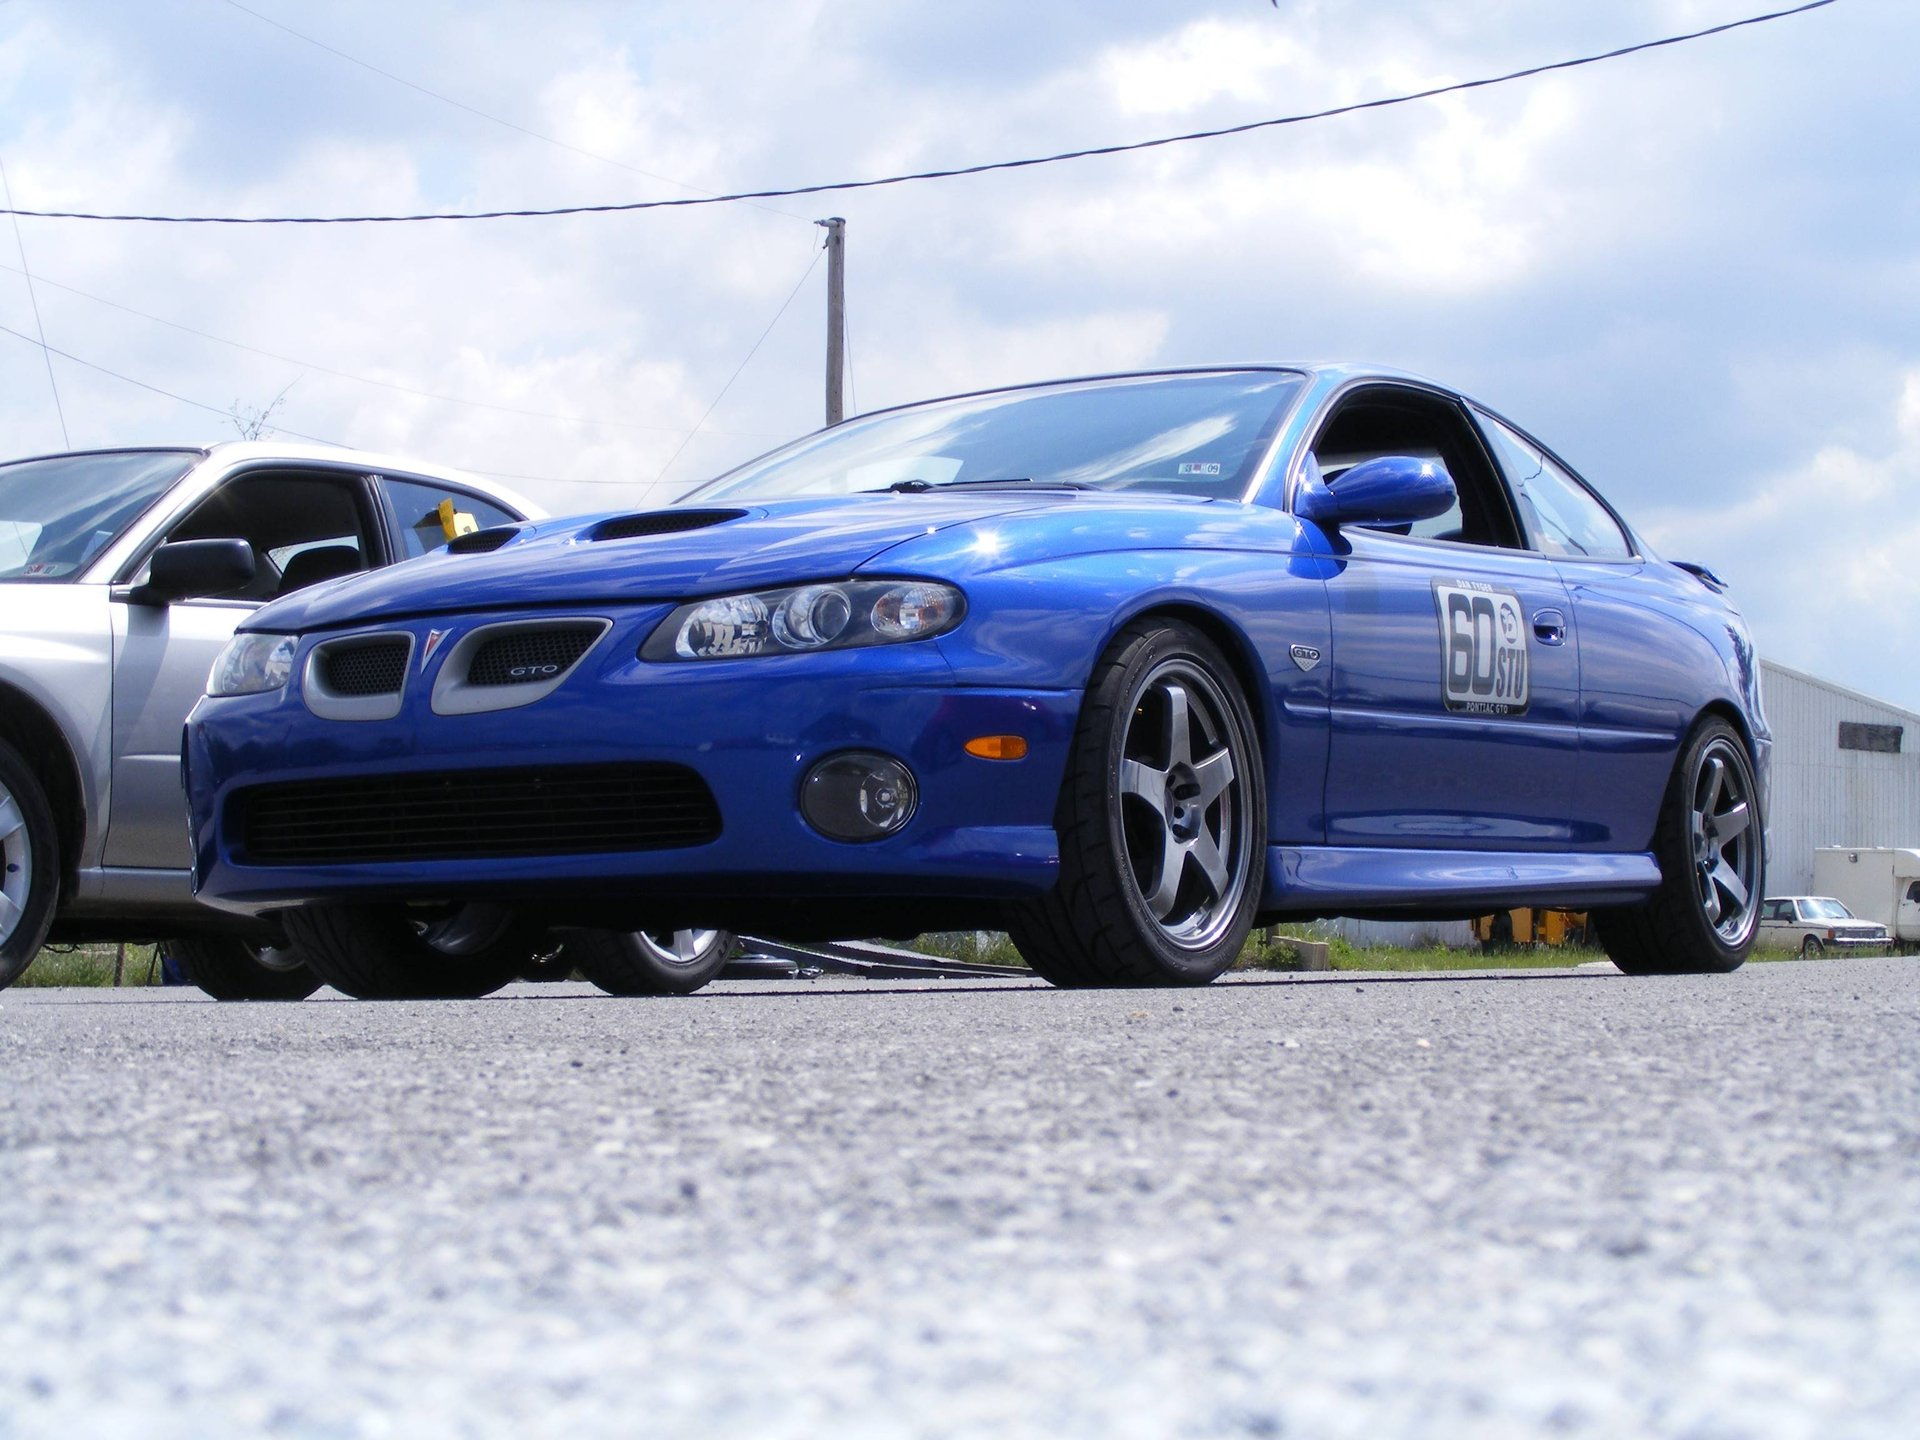 Pictures of your GTO on the track | LS1GTO com Forums